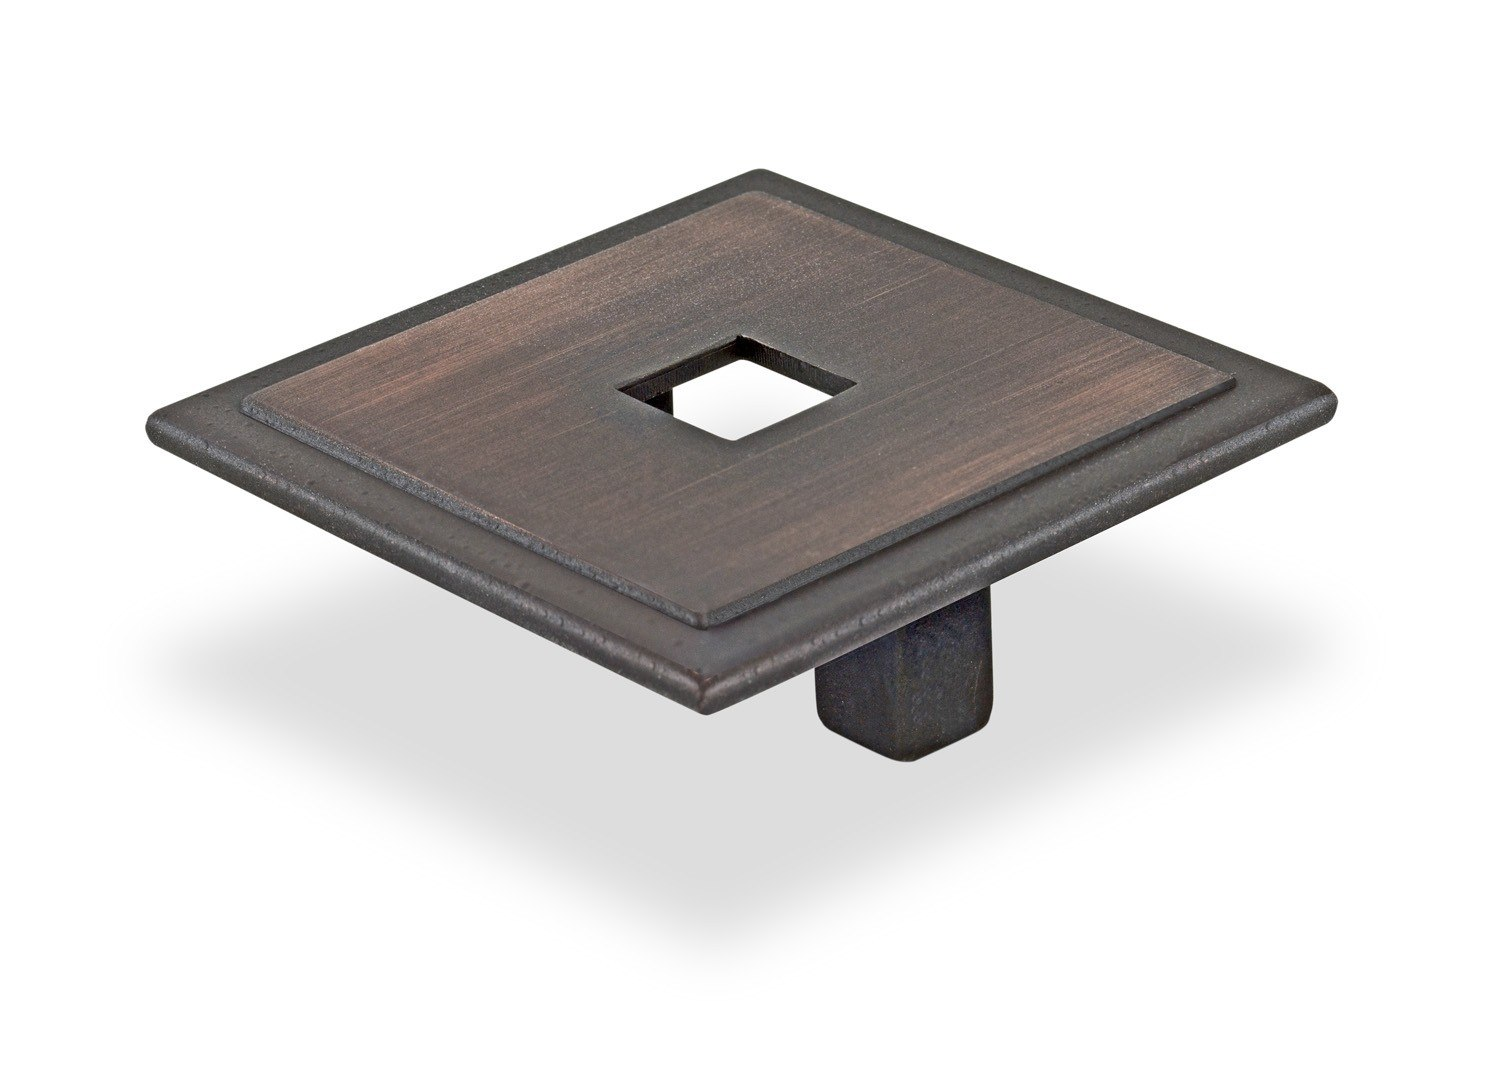 TOPEX M2055.32RBS SMALL SQUARE WITH HOLE VENETIAN BRONZE 1 1/4 INCHES (32MM) CENTER TO CENTER